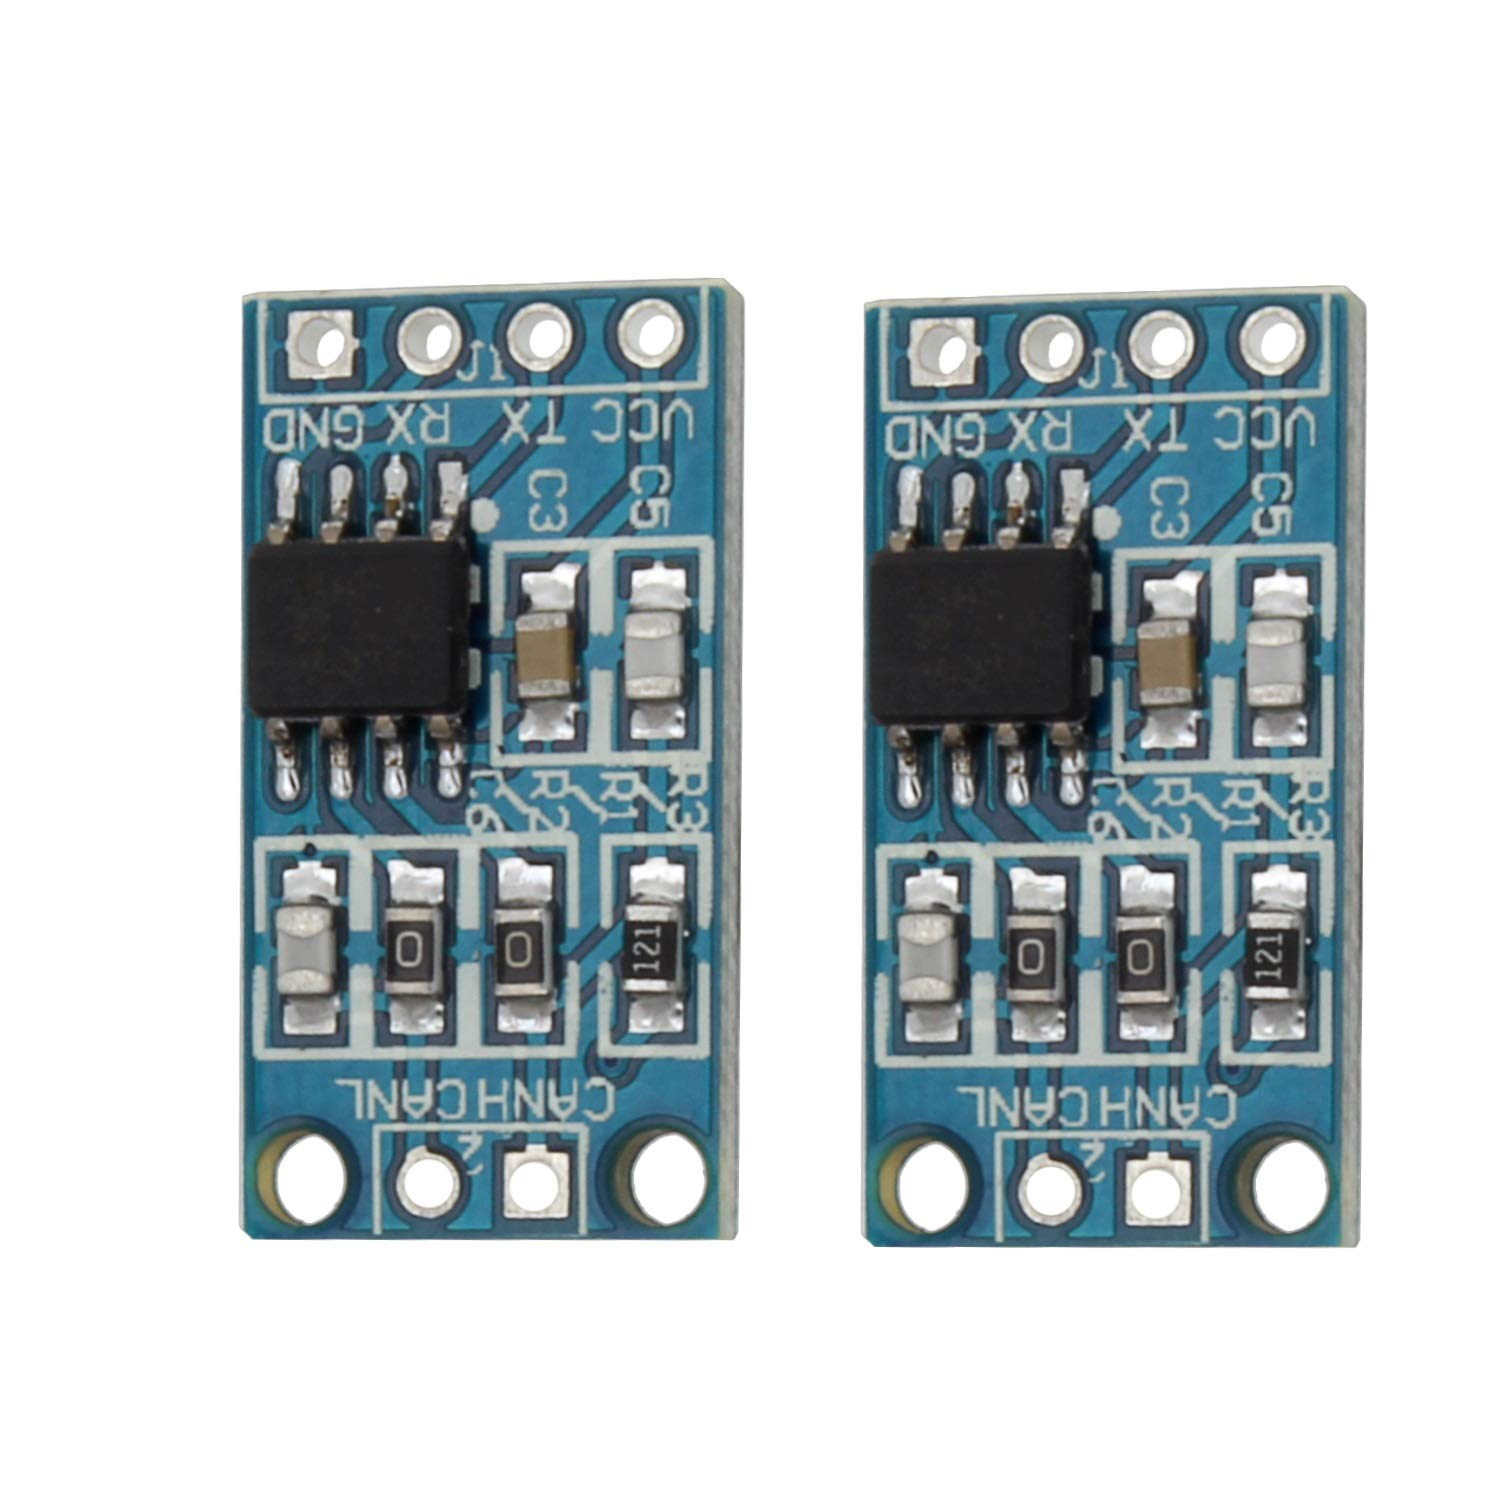 TJA1050 CAN The Controller Interface Module The Bus Driver Interface modul